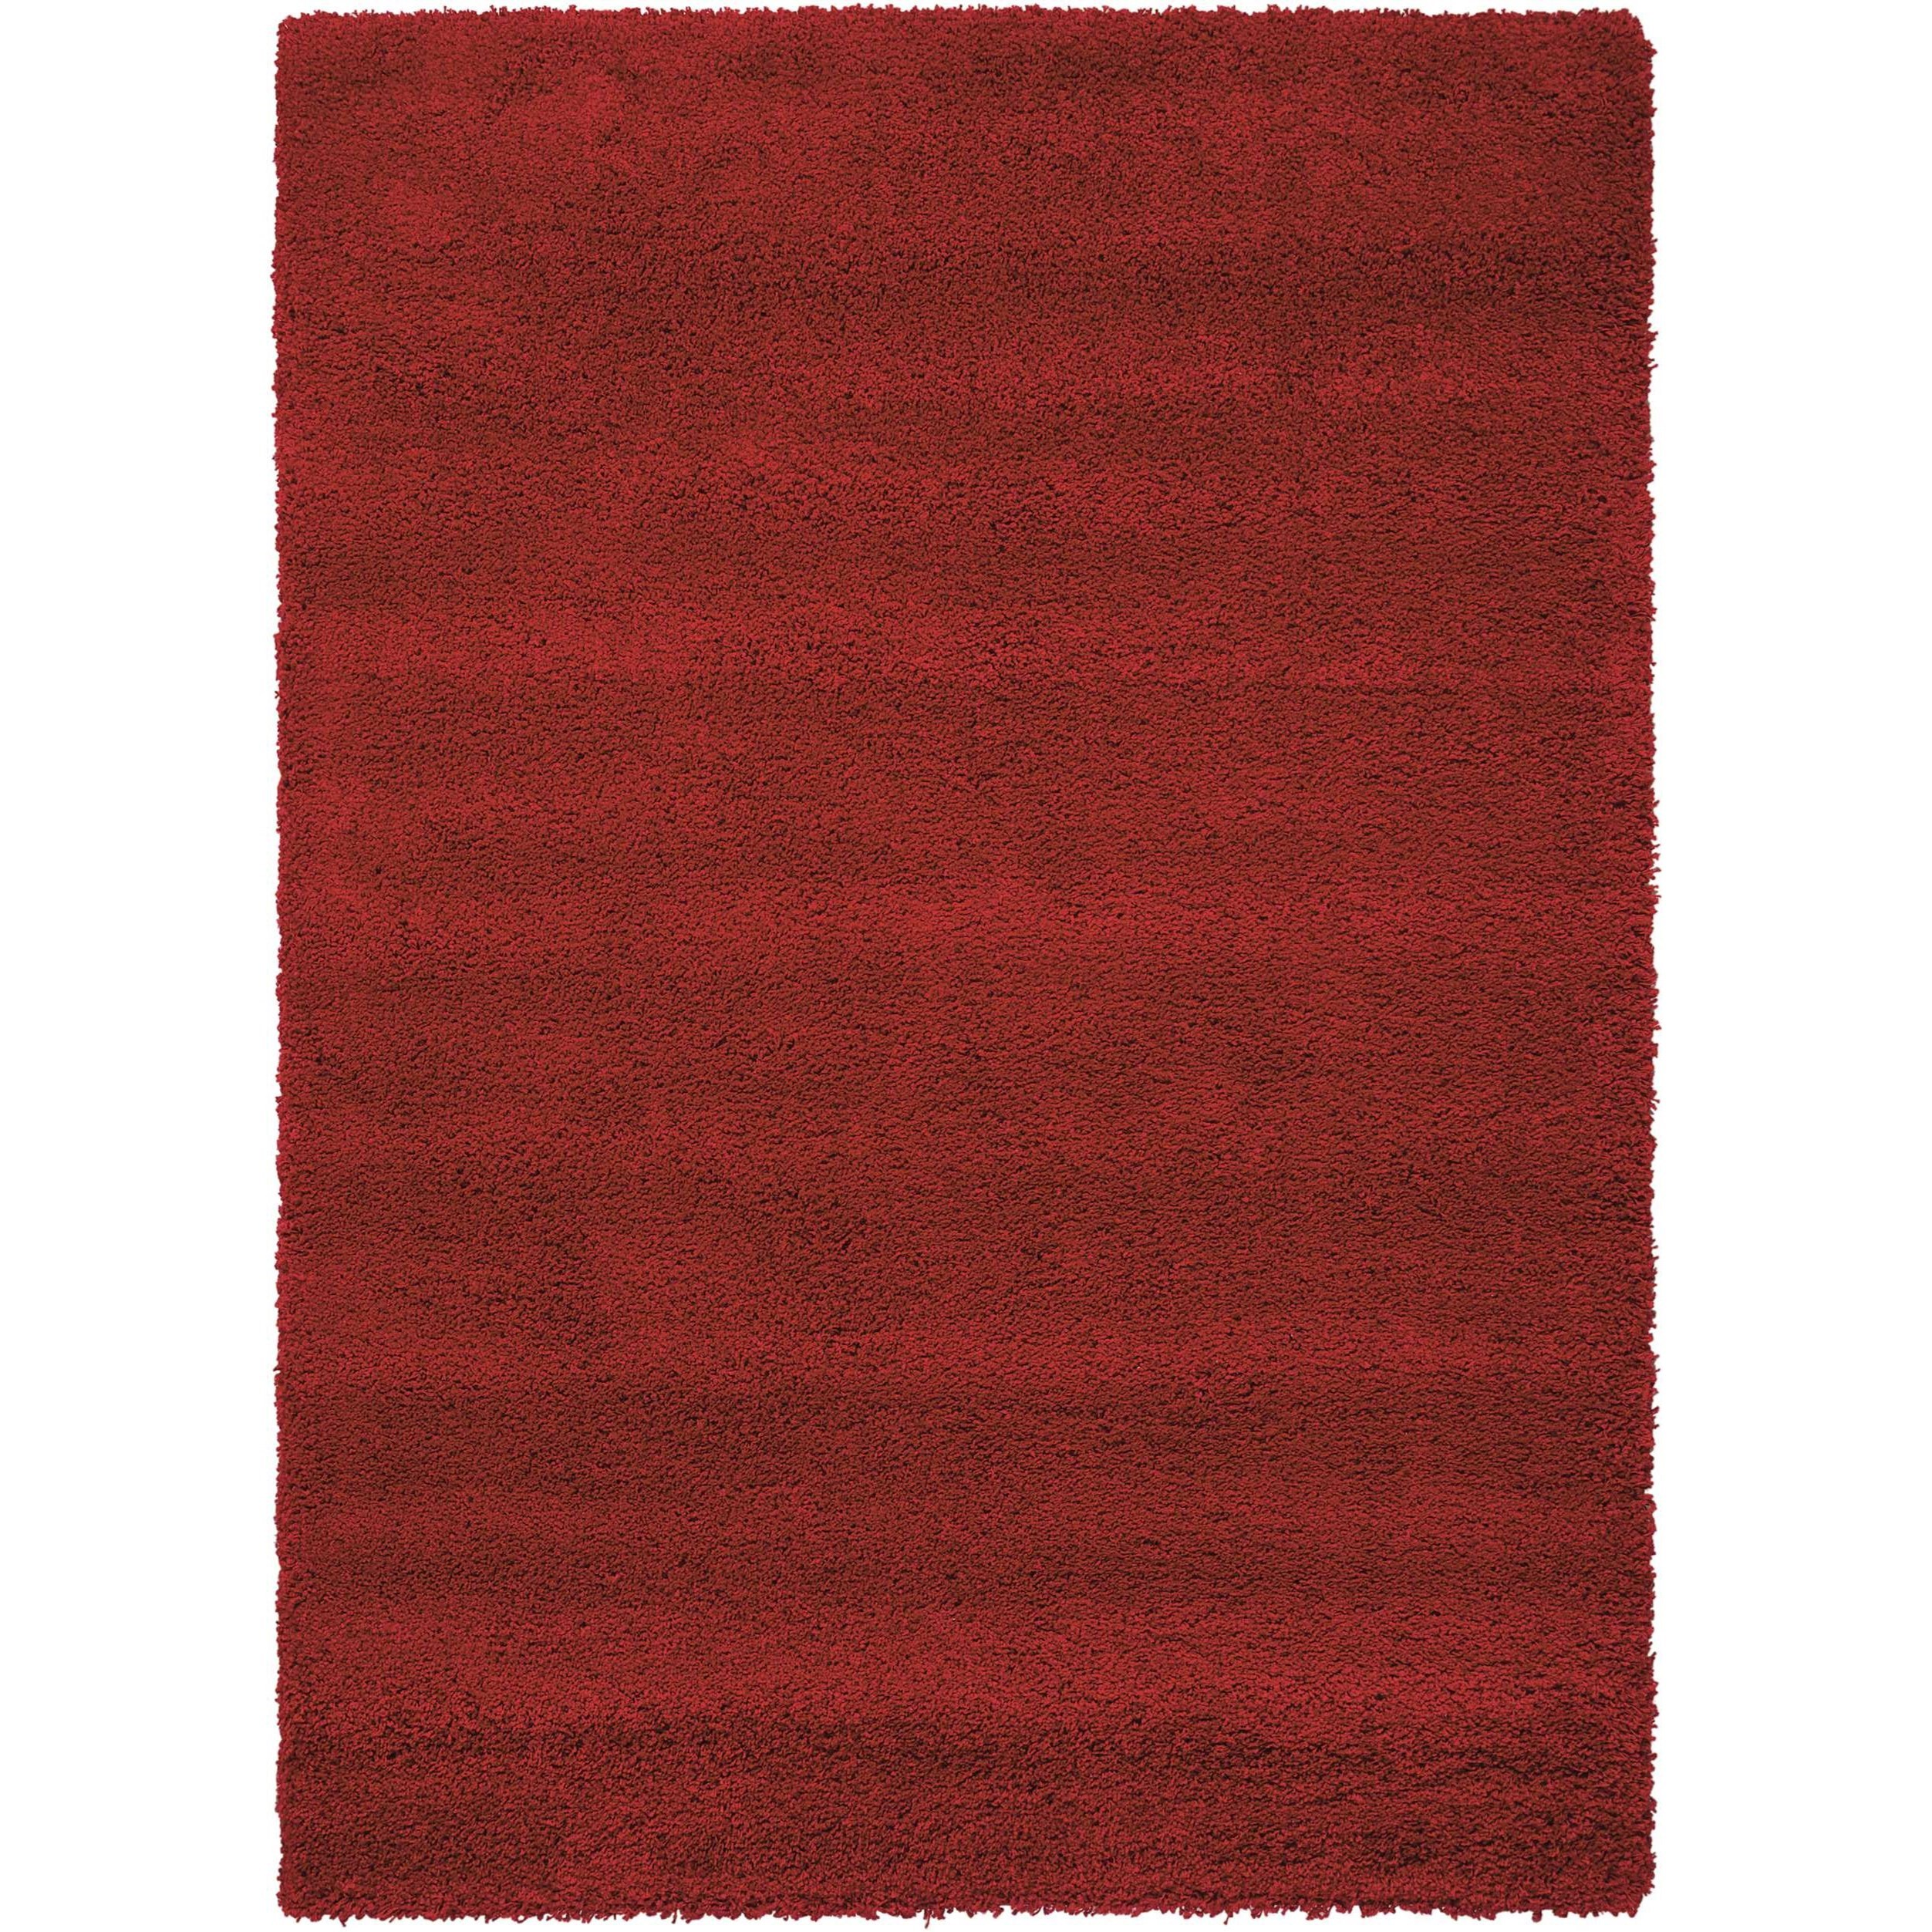 Amore Amore AMOR1 Red 4'x6' Area Rug by Nourison at Home Collections Furniture